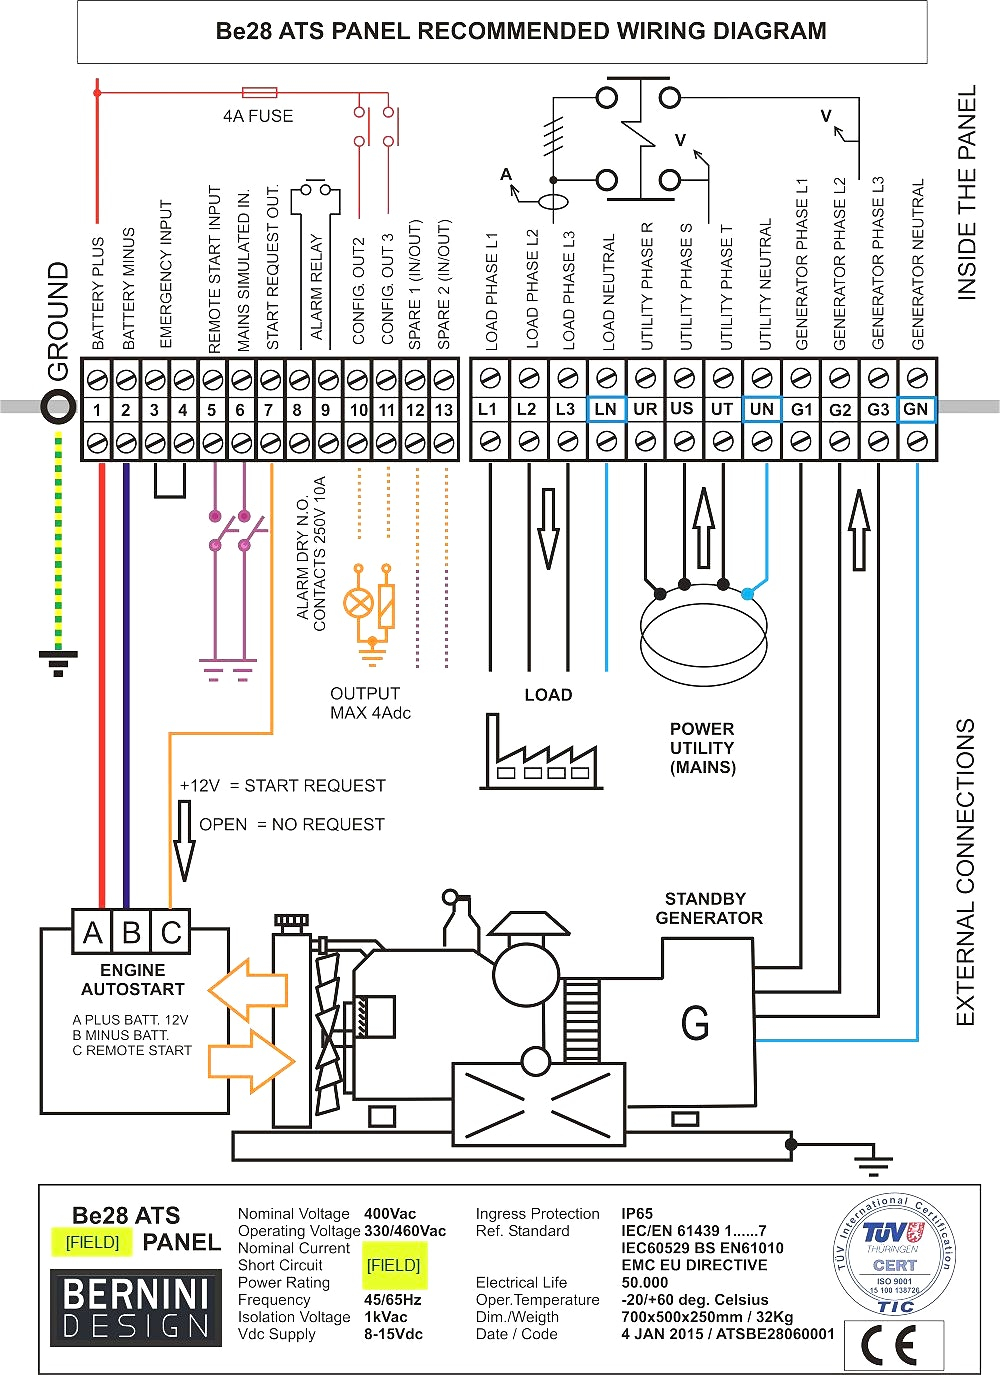 Generac 200 Amp Automatic Transfer Switch Wiring Diagram Gallery Main Lug Breaker Box Collection Generator 11 Download